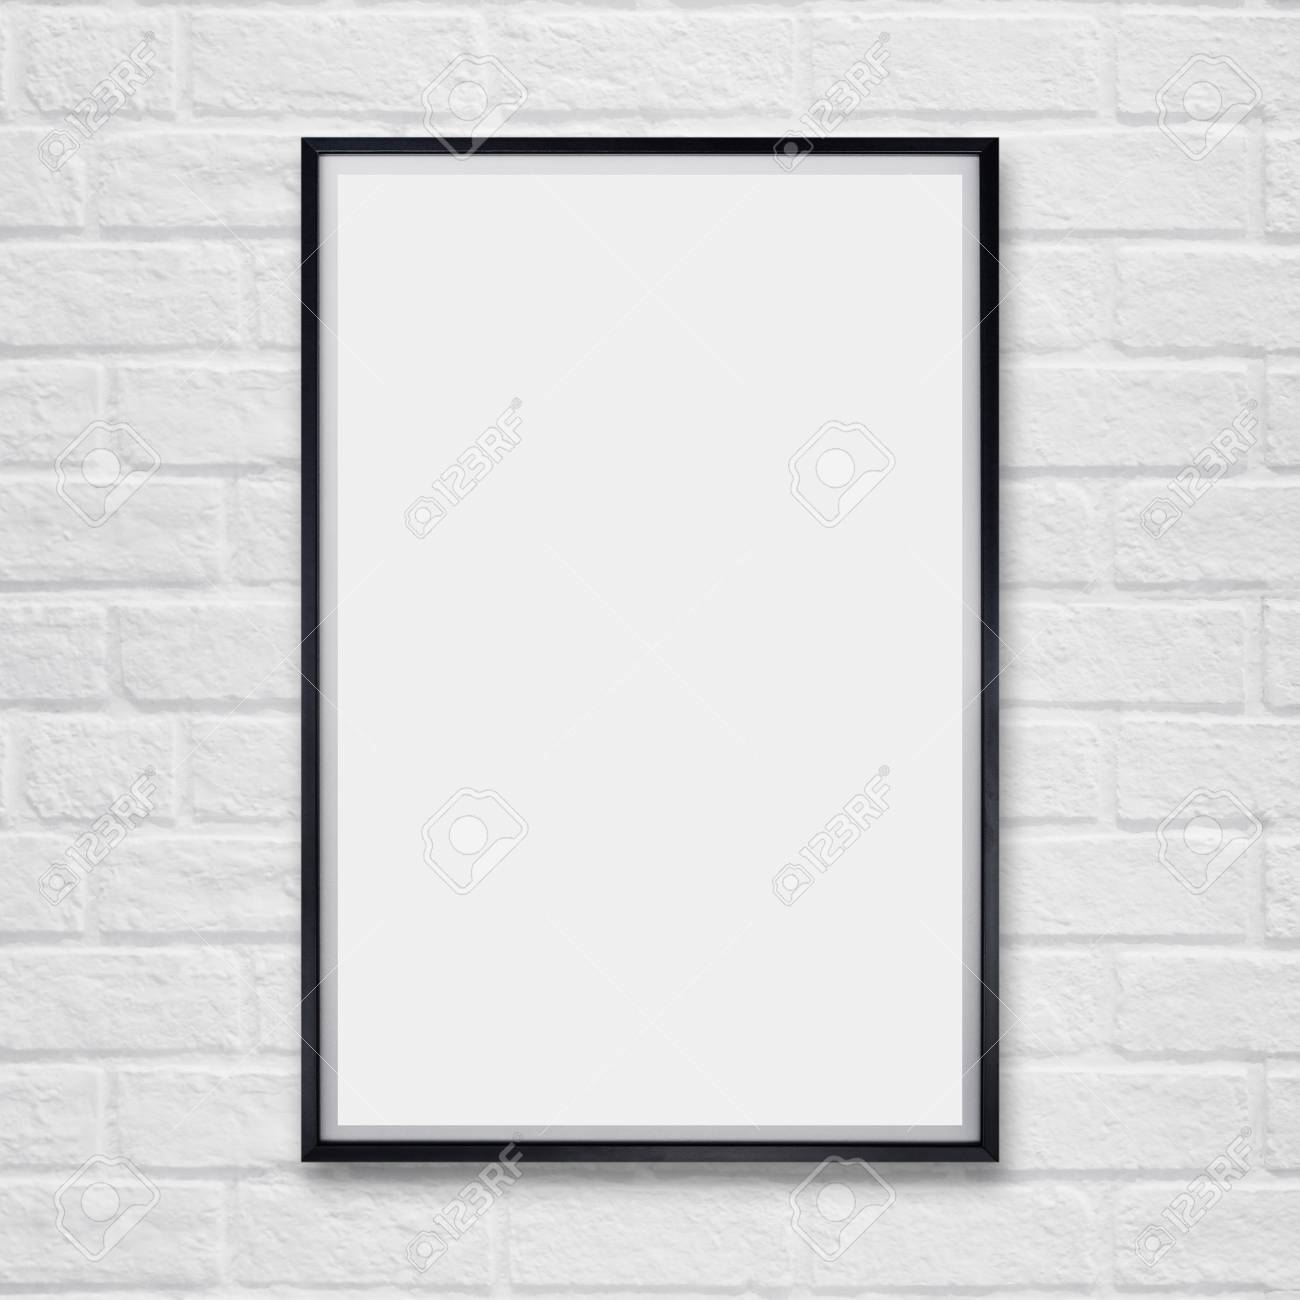 Mock Up Blank Poster Picture Frame On White Brick Wall Stock Photo